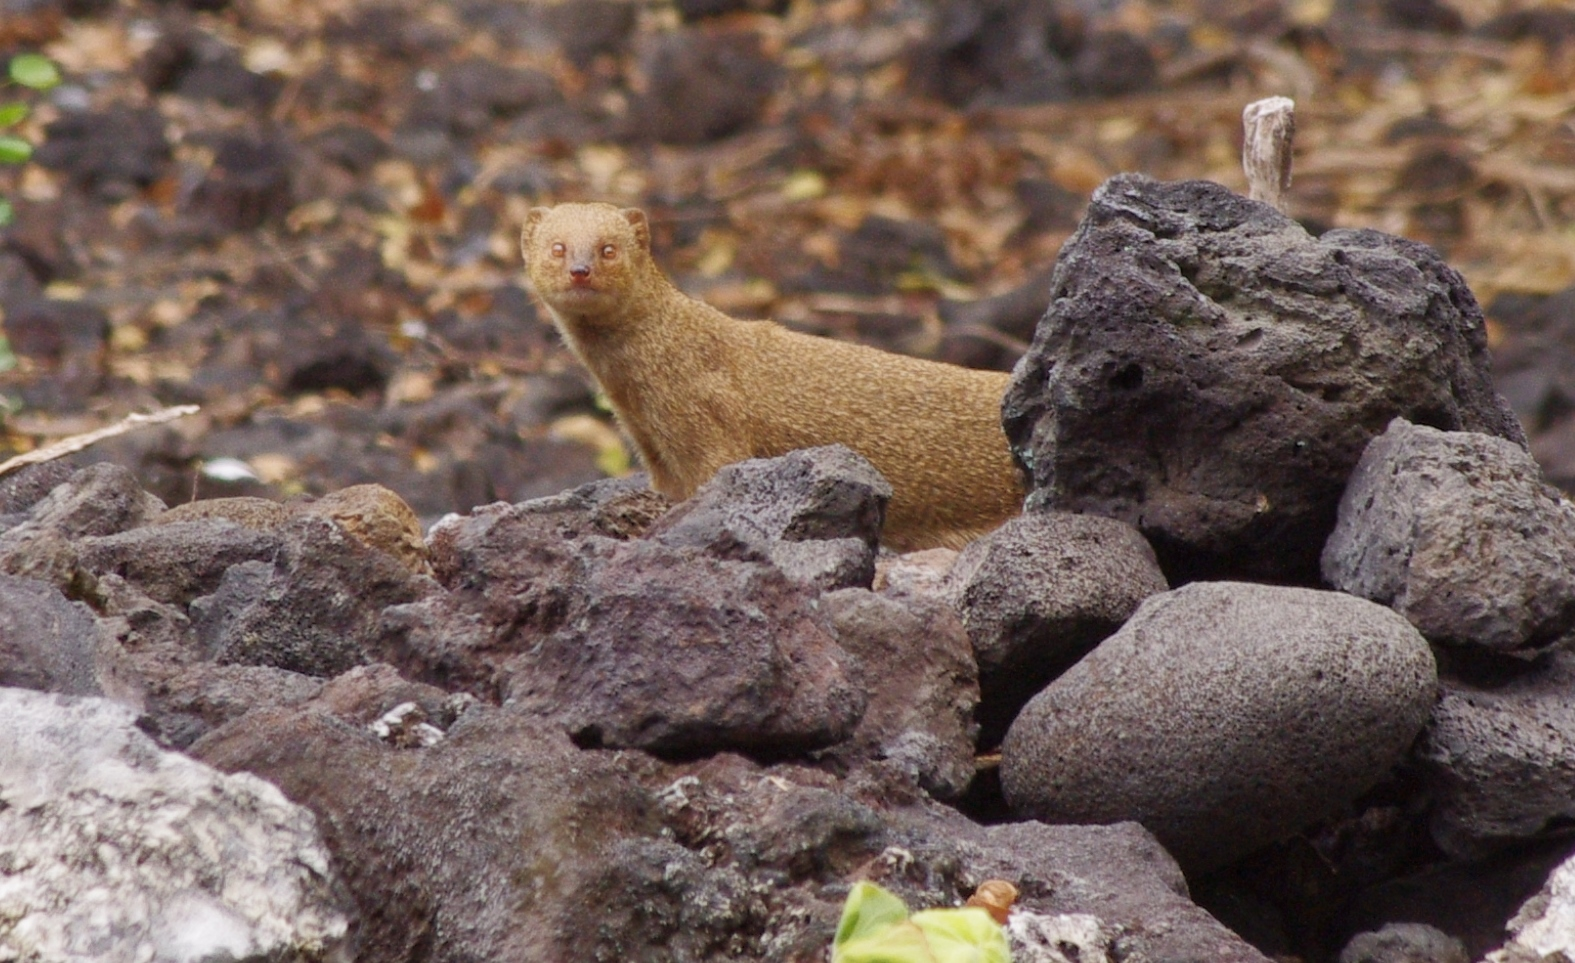 Filethe Mongoose Is Native To India And Was Brought To Hawaii To